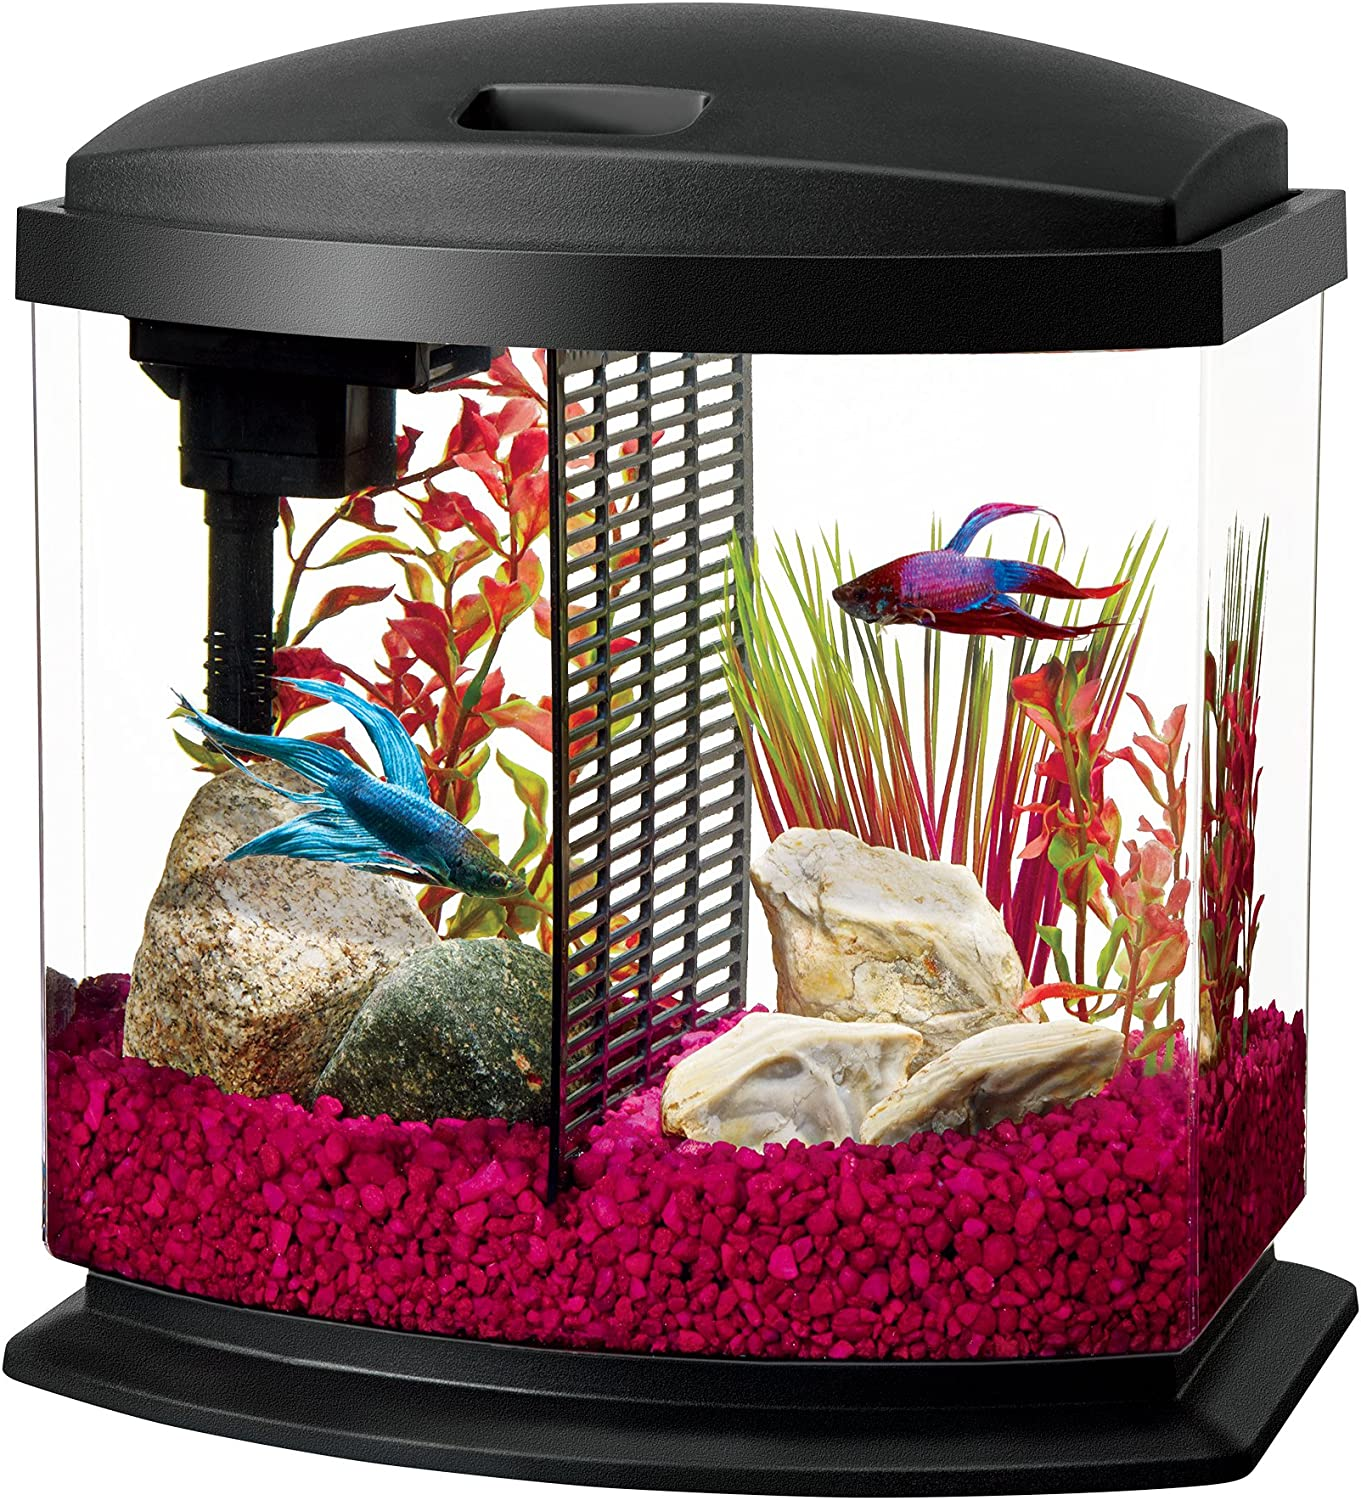 Aqueon LED MiniBow Aquarium Starter Kit with LED Lighting